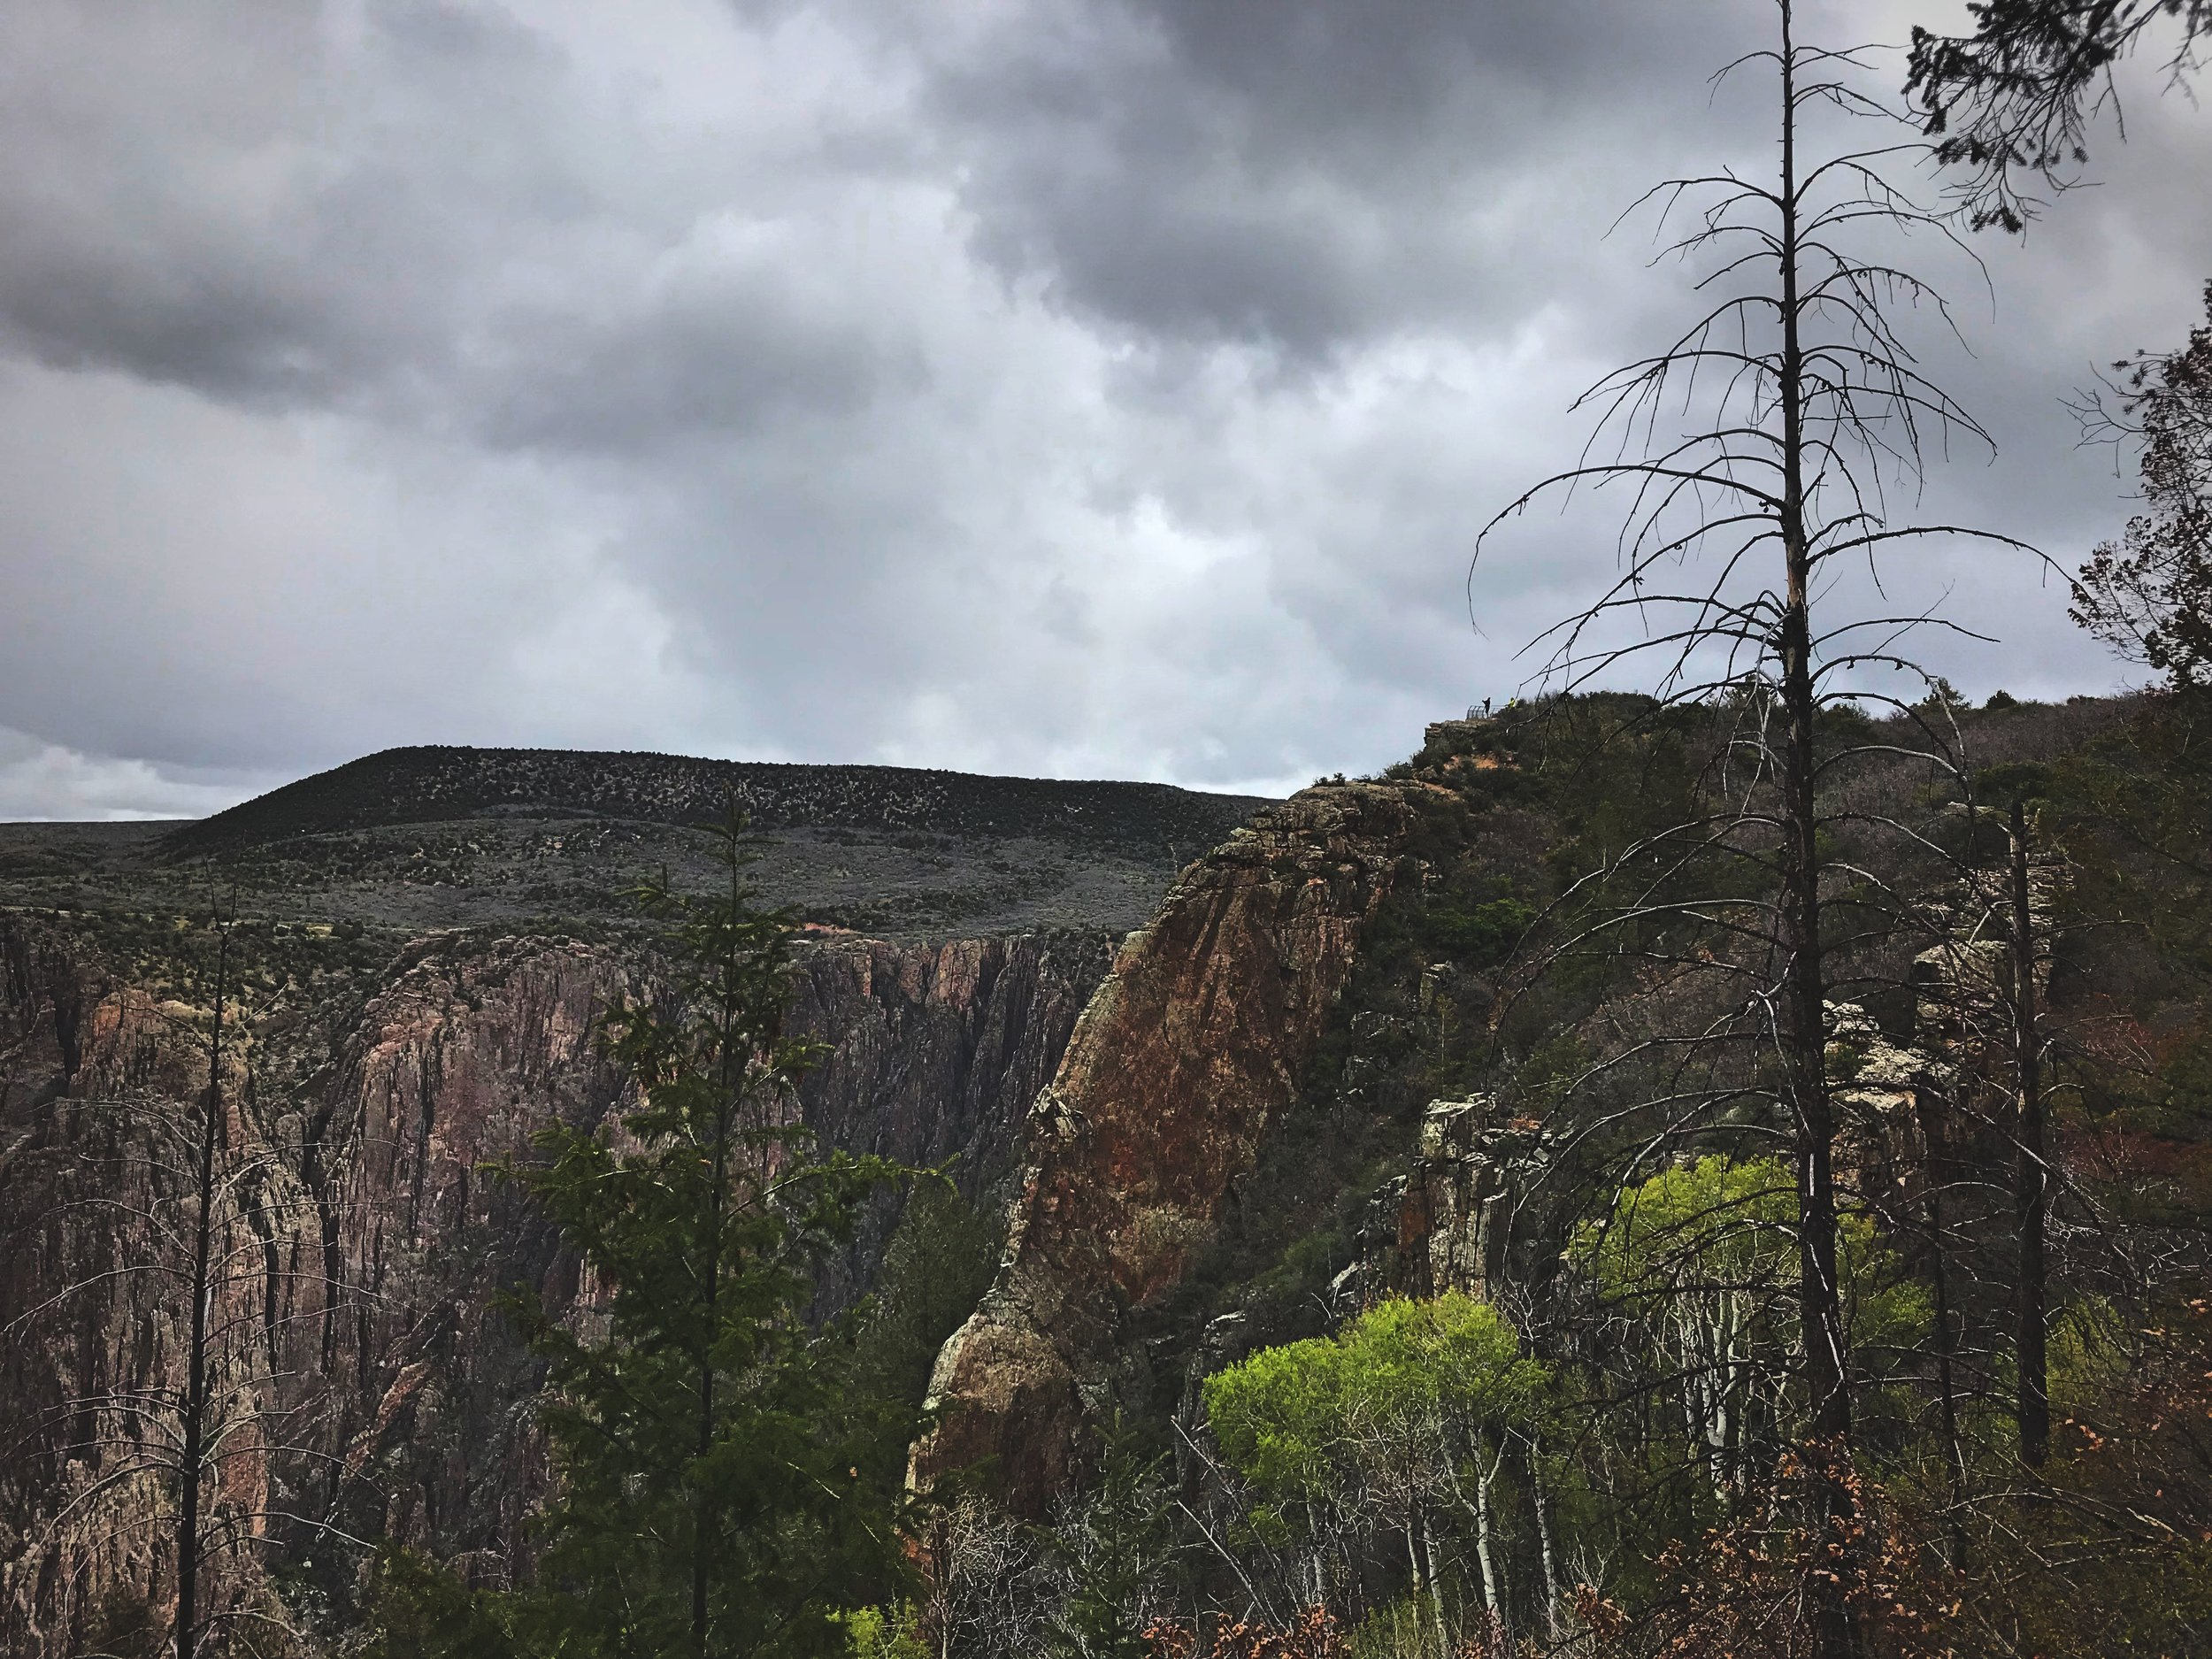 Even though it had rained the night before, we found that the Gunnison Route was not too slippery.